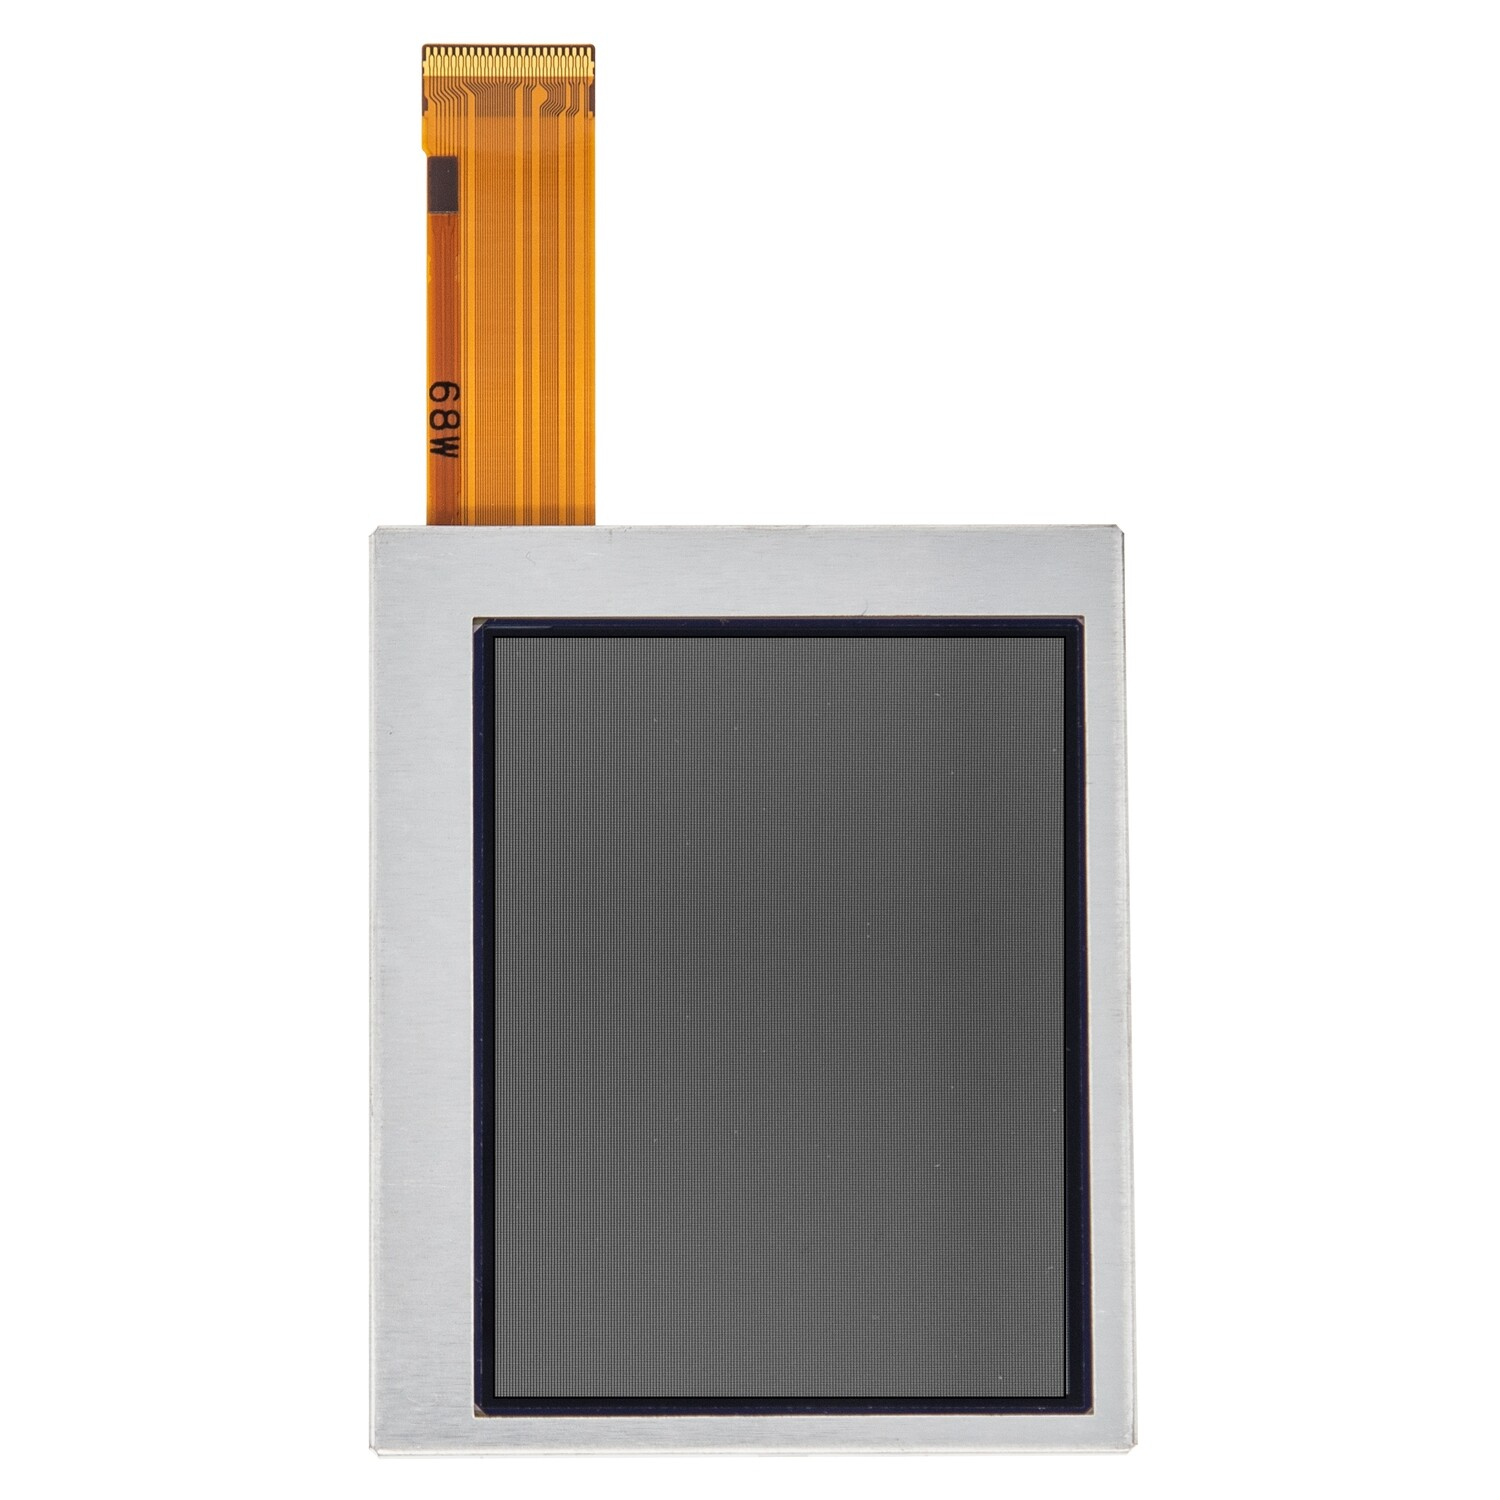 DS Original Top / Bottom LCD Screen (NTR-001)